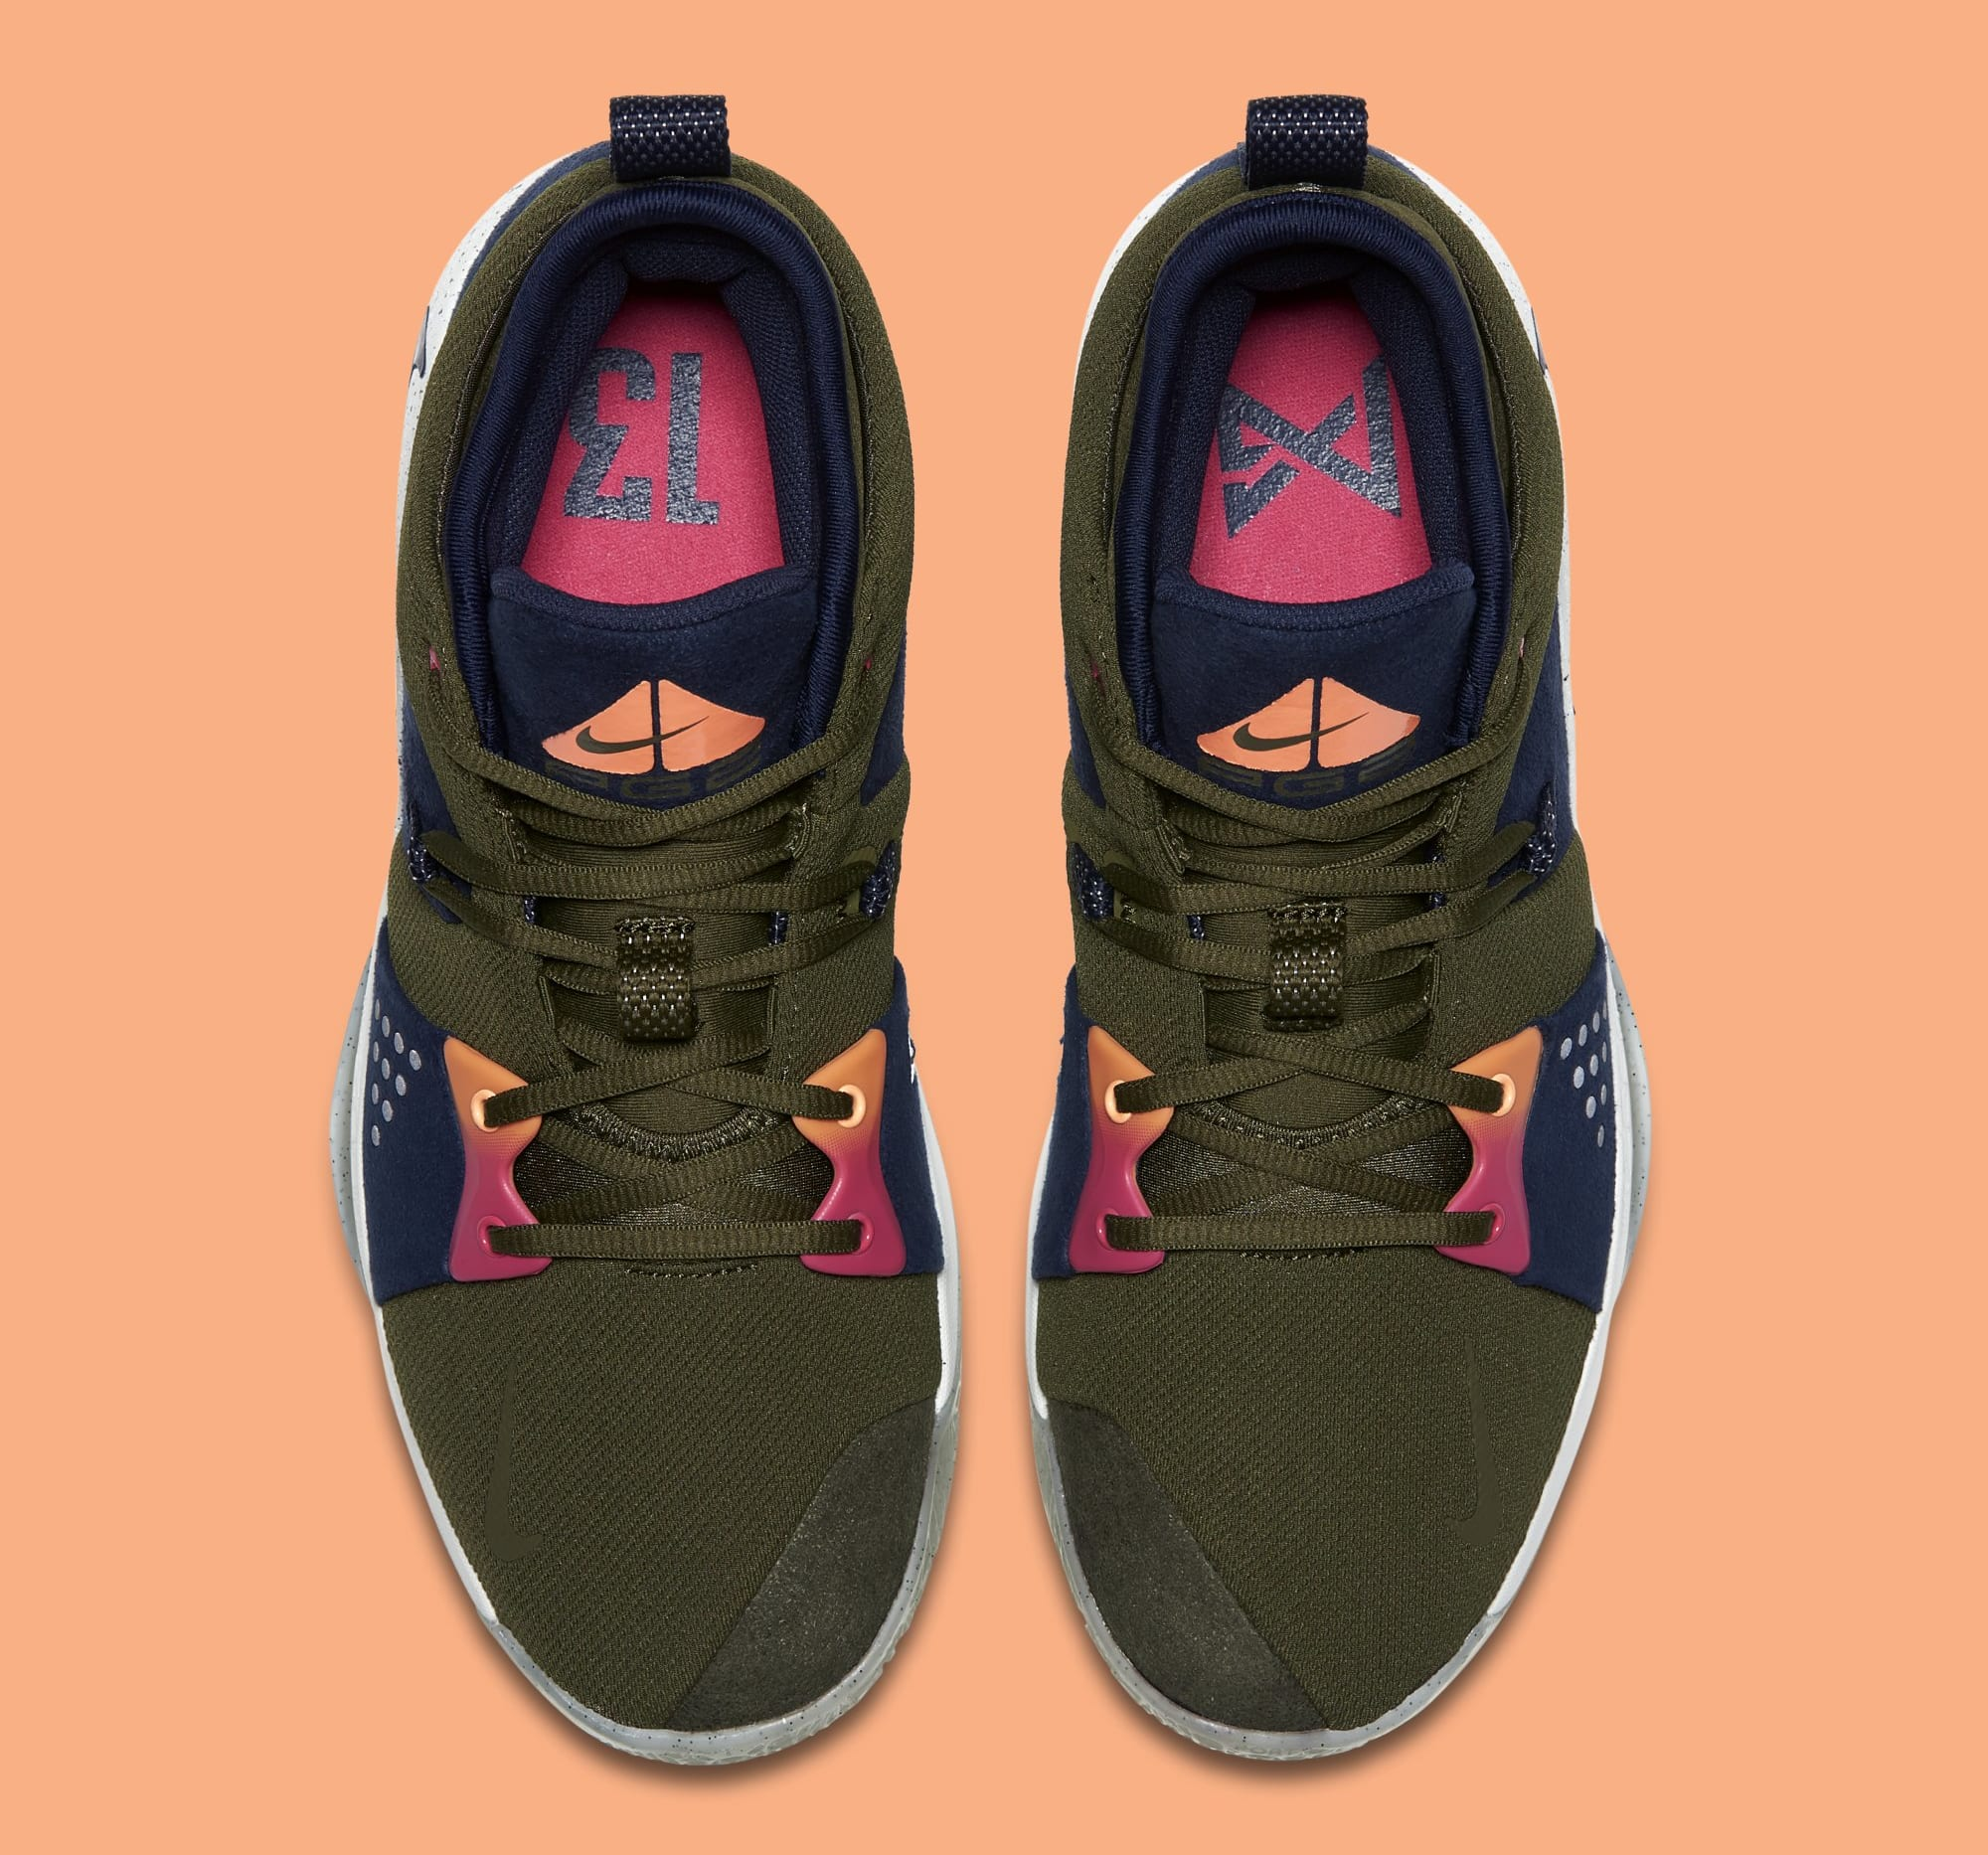 Nike PG2 'Olive Canvas/Obsidian-Light Silver' (Top)